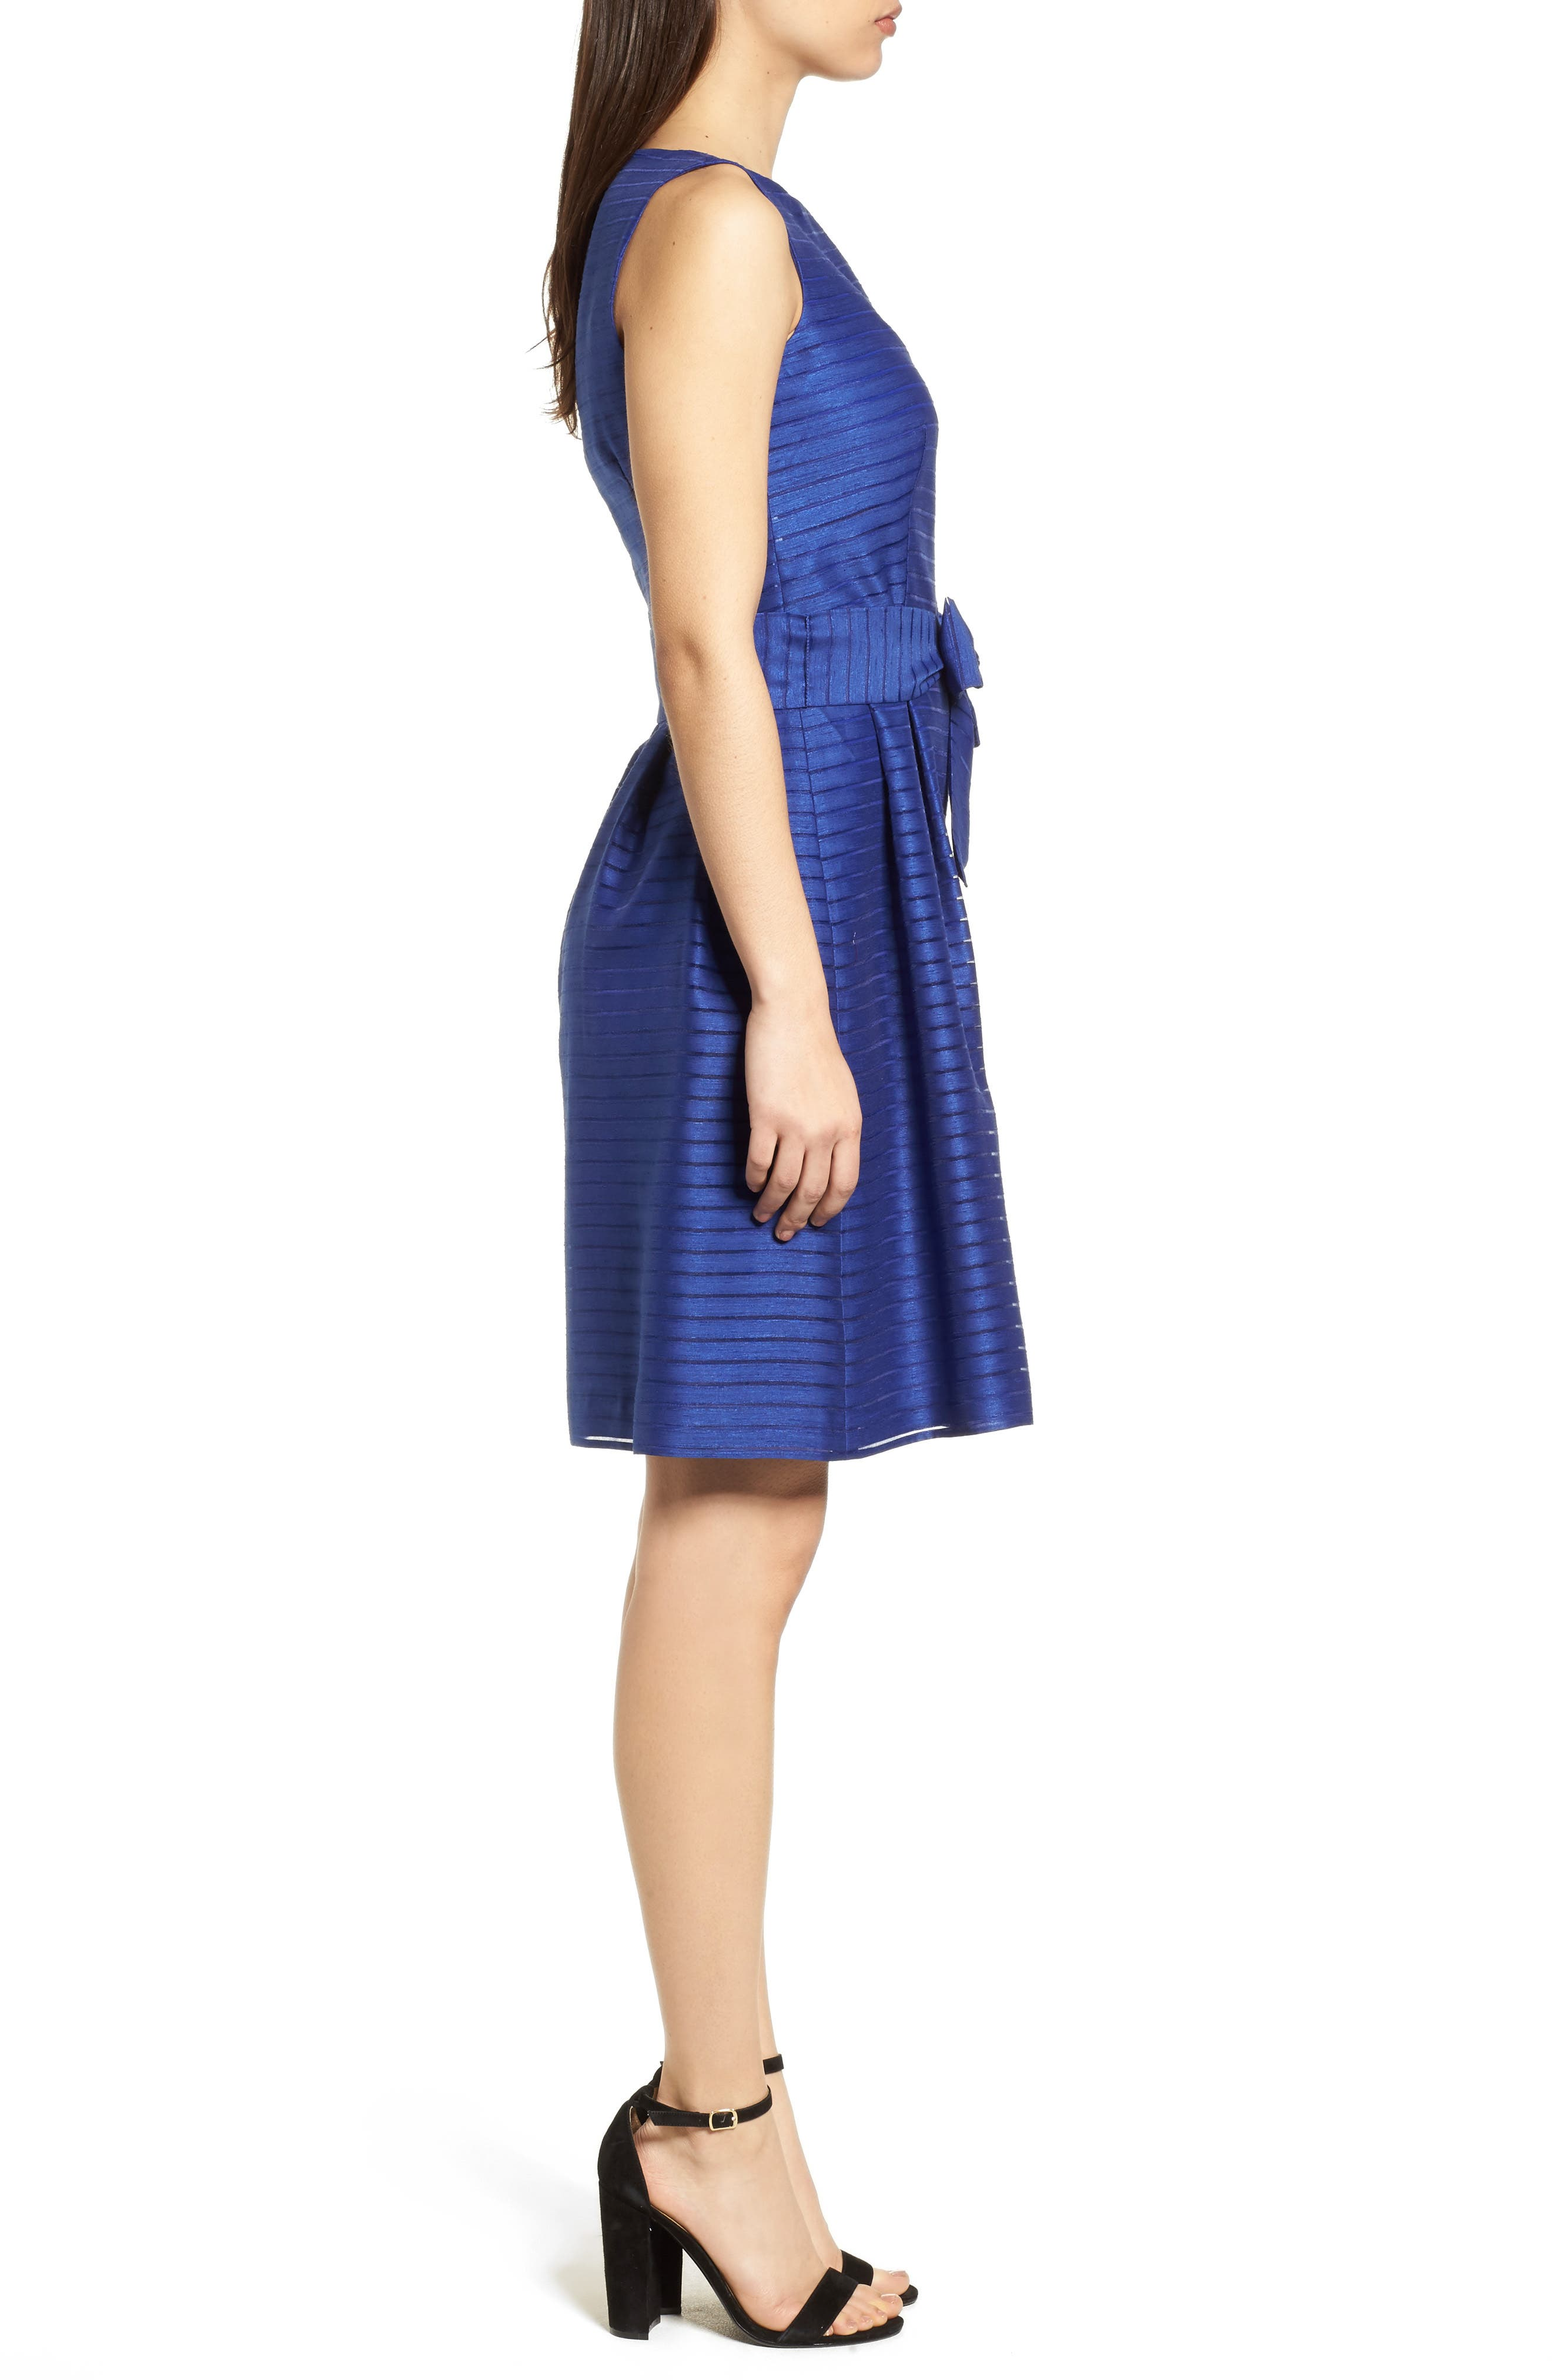 ANNE KLEIN,                             Shadow Stripe Fit & Flare Dress,                             Alternate thumbnail 3, color,                             430